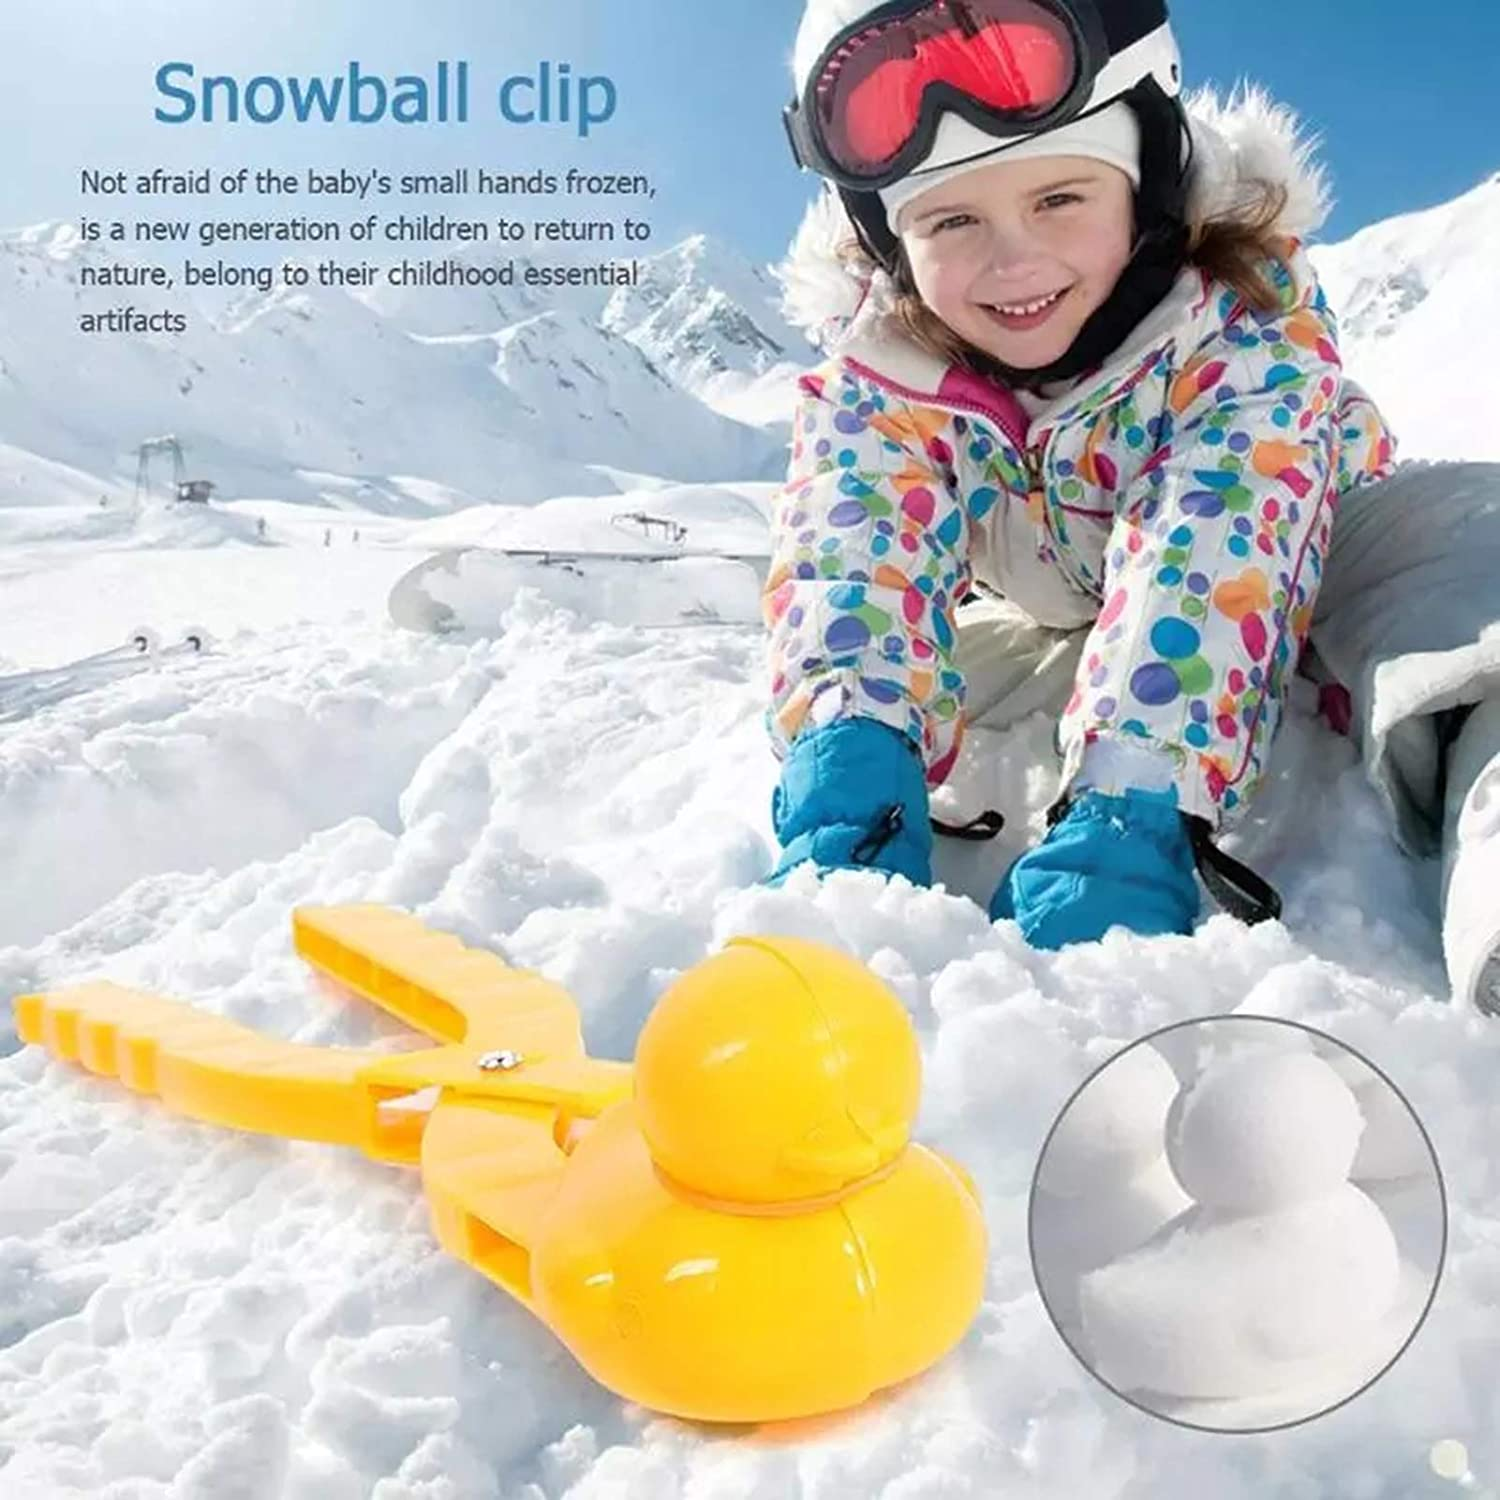 PKLMN Snowball Maker Snow Toys Snowball Maker Tool with Handle Winter Snow Toy for Kids and Adults Gift for Children Kids and Adults